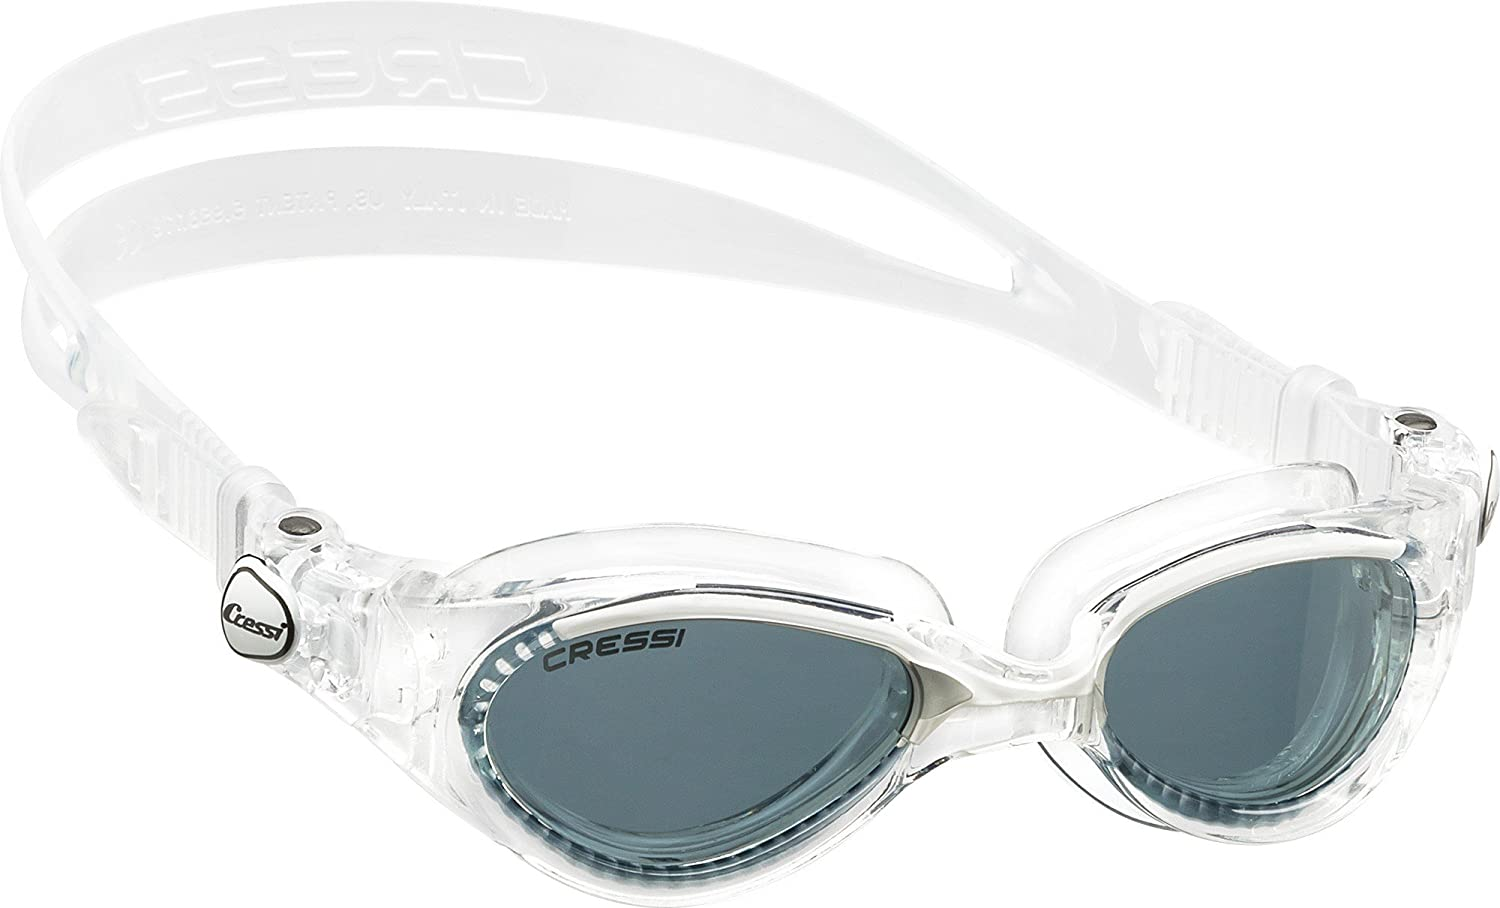 Cressi Flash Lady, clear white, tinted lens